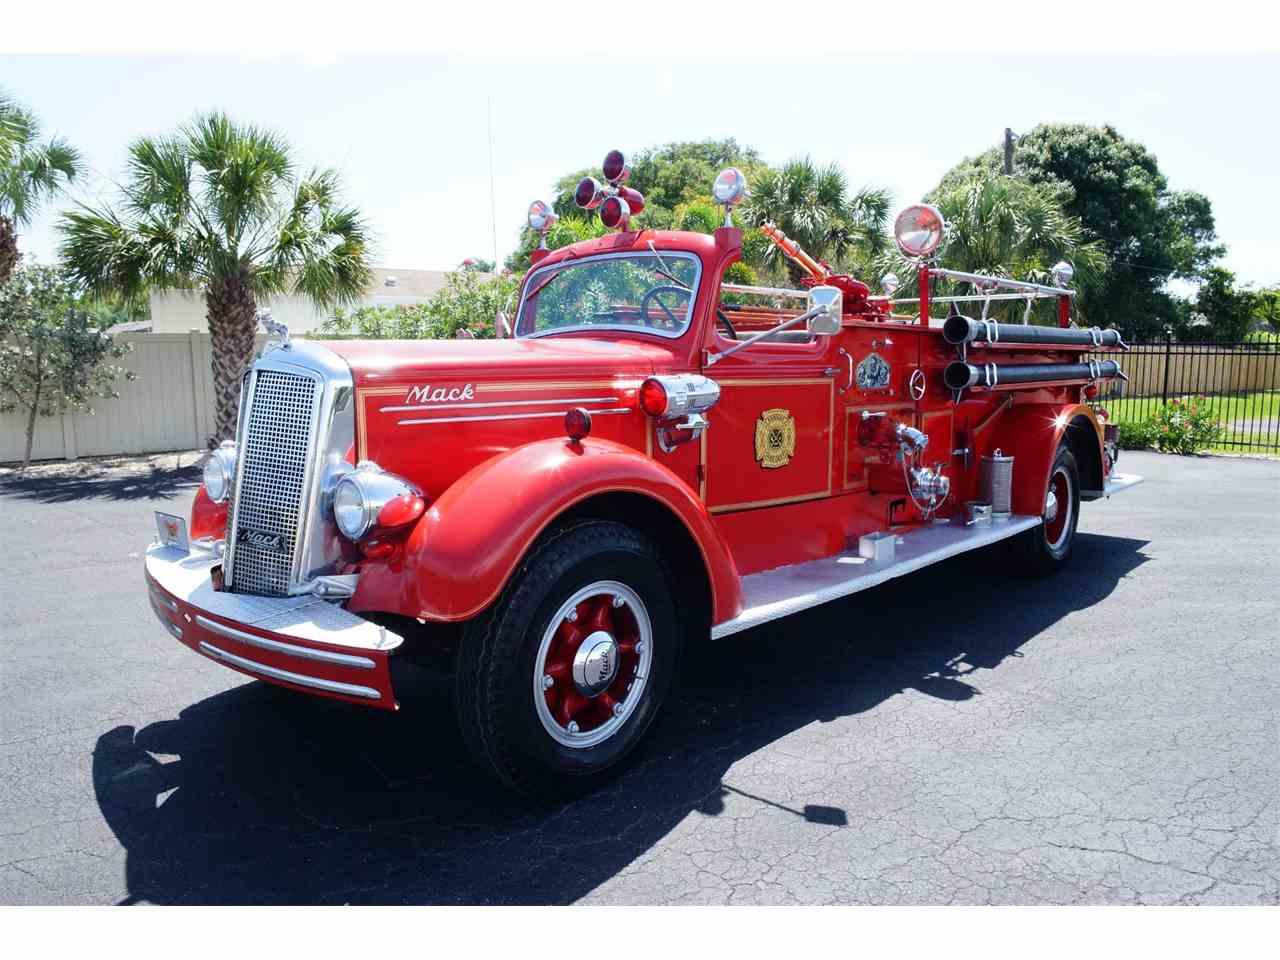 1943 mack fire truck for sale classiccars com cc 1104924 volvo semi truck wiring diagram large picture of '43 fire truck nokc